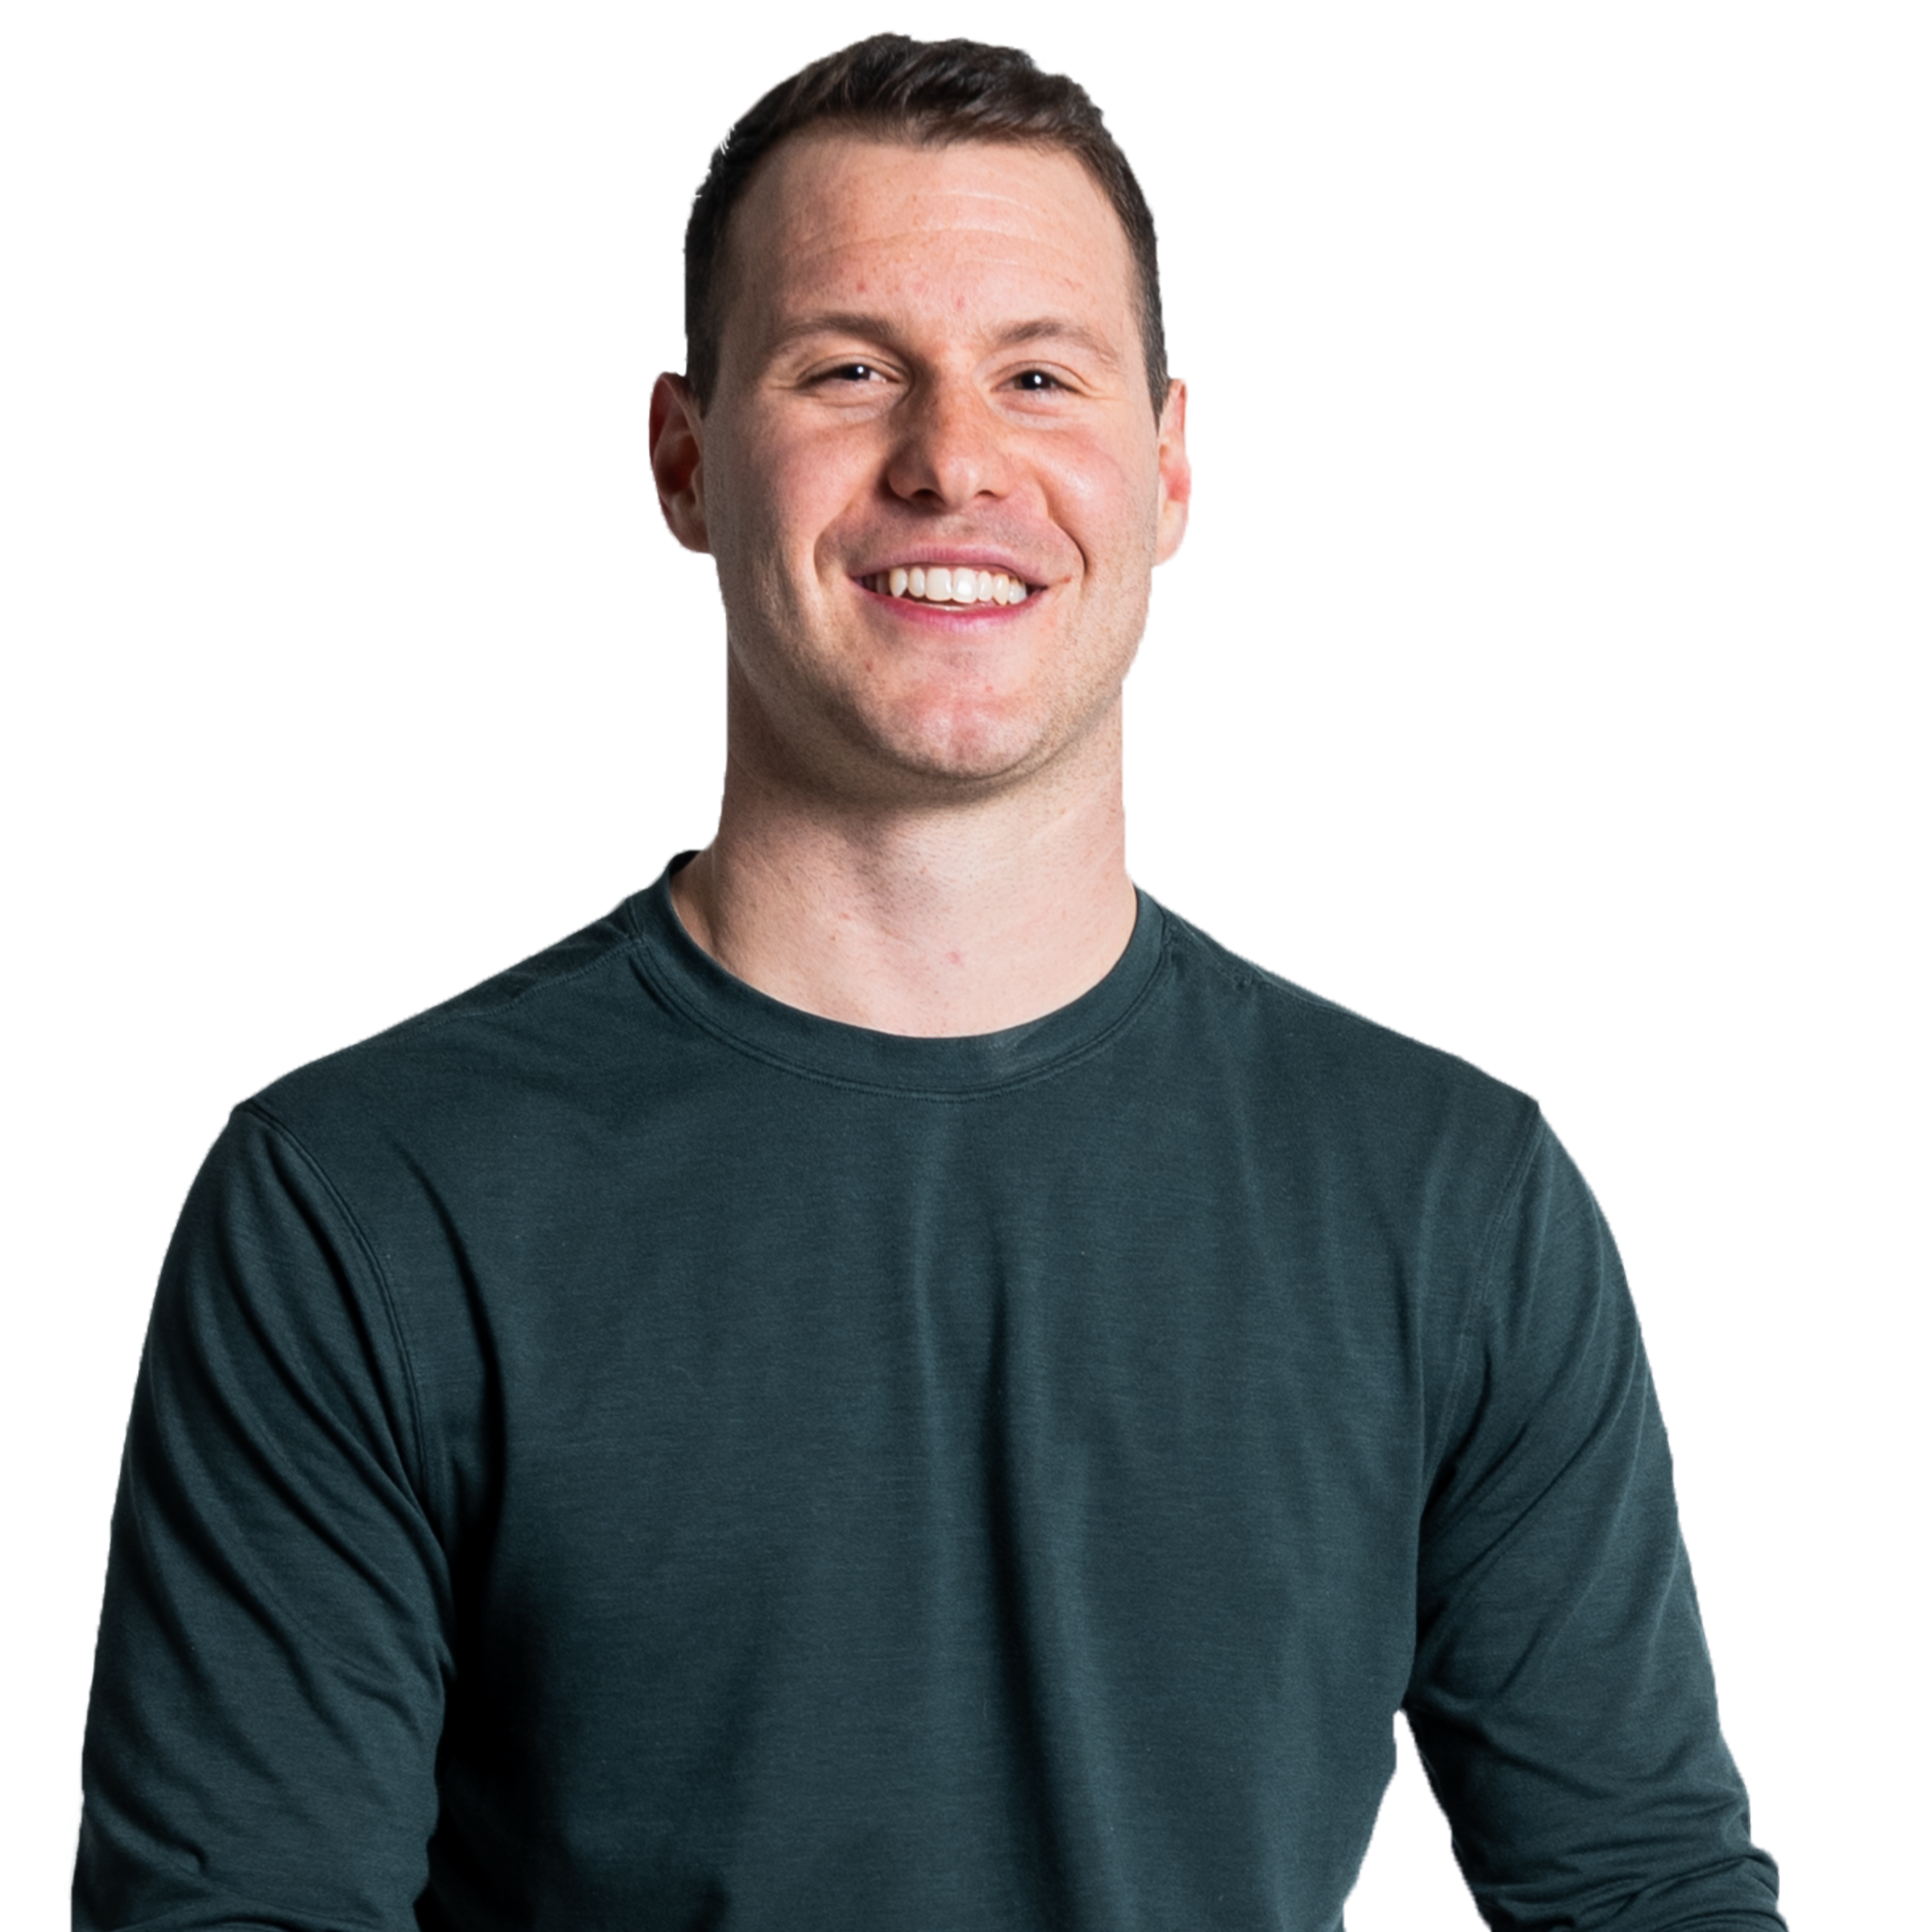 Tyler, head mentor at Stride Learning